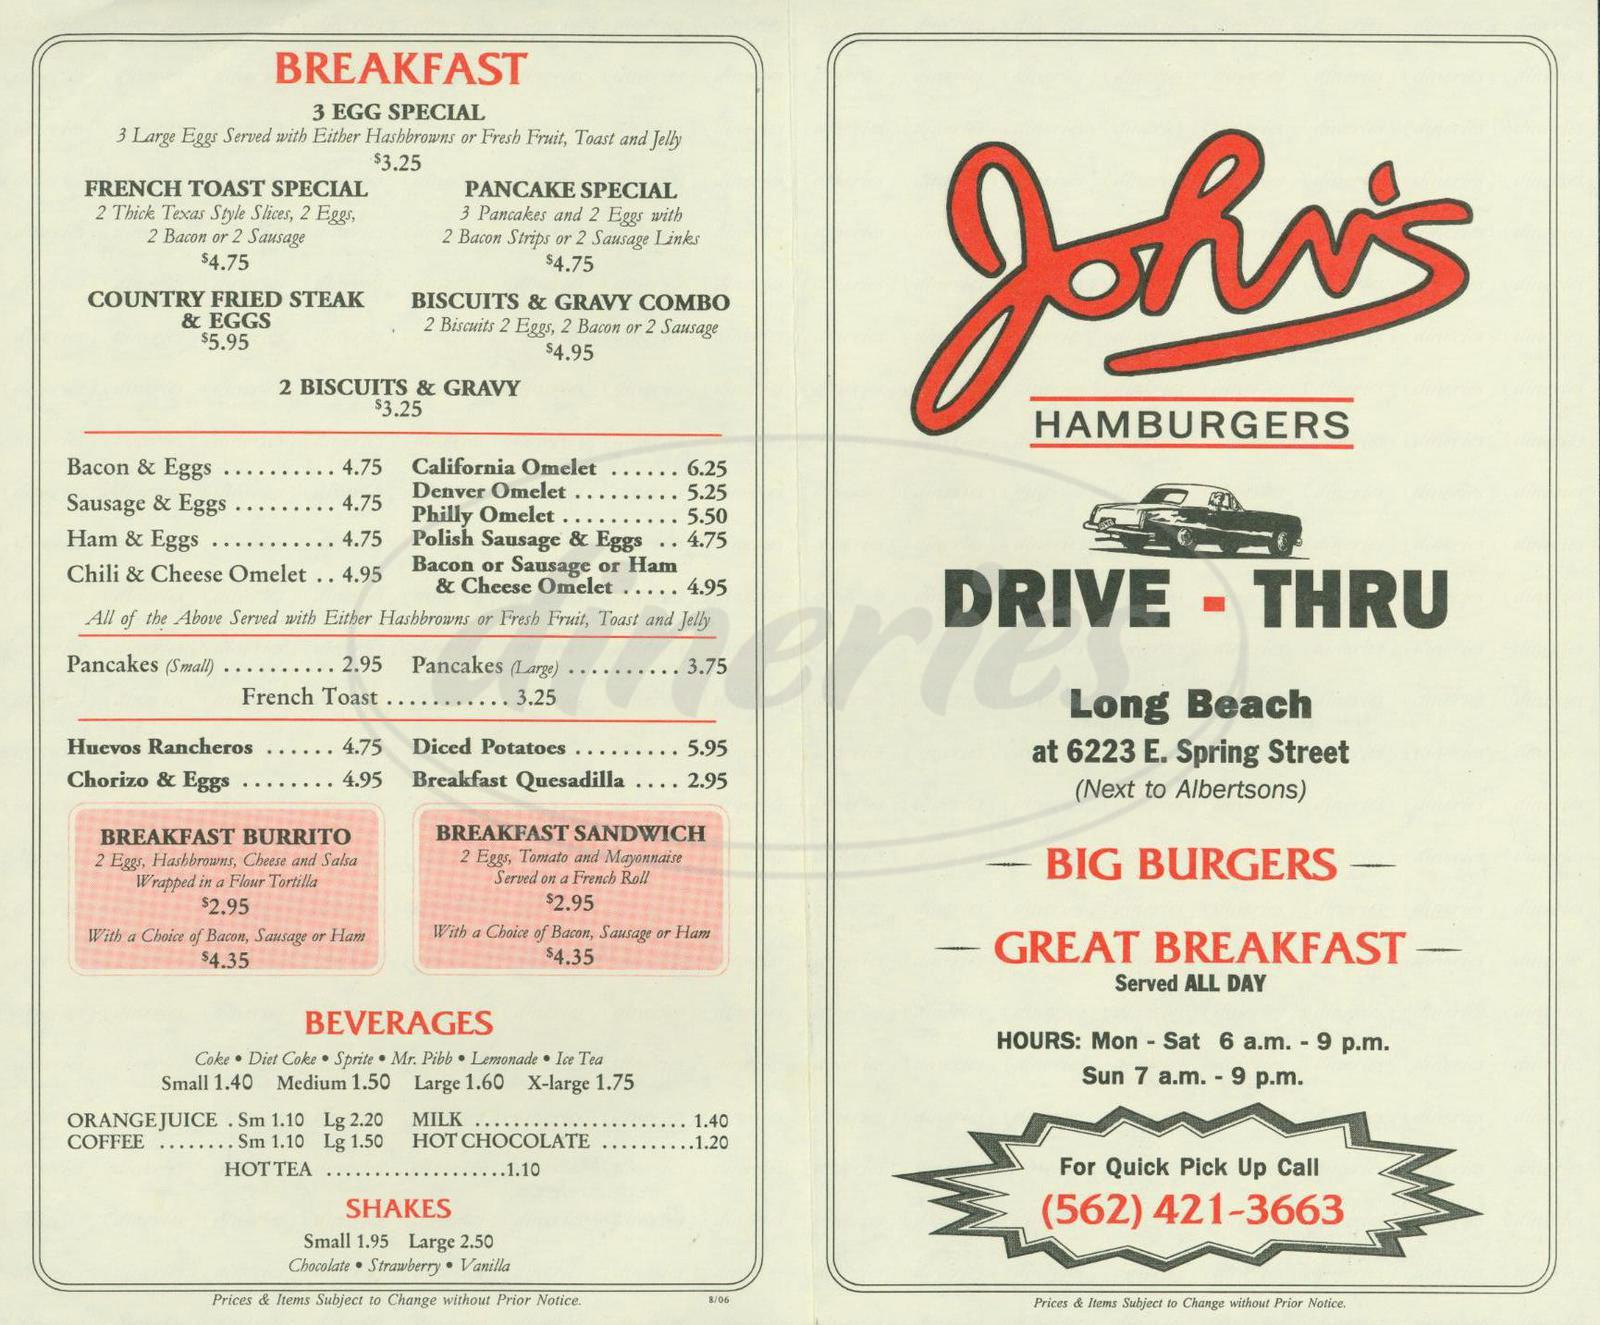 menu for John's Hamburgers